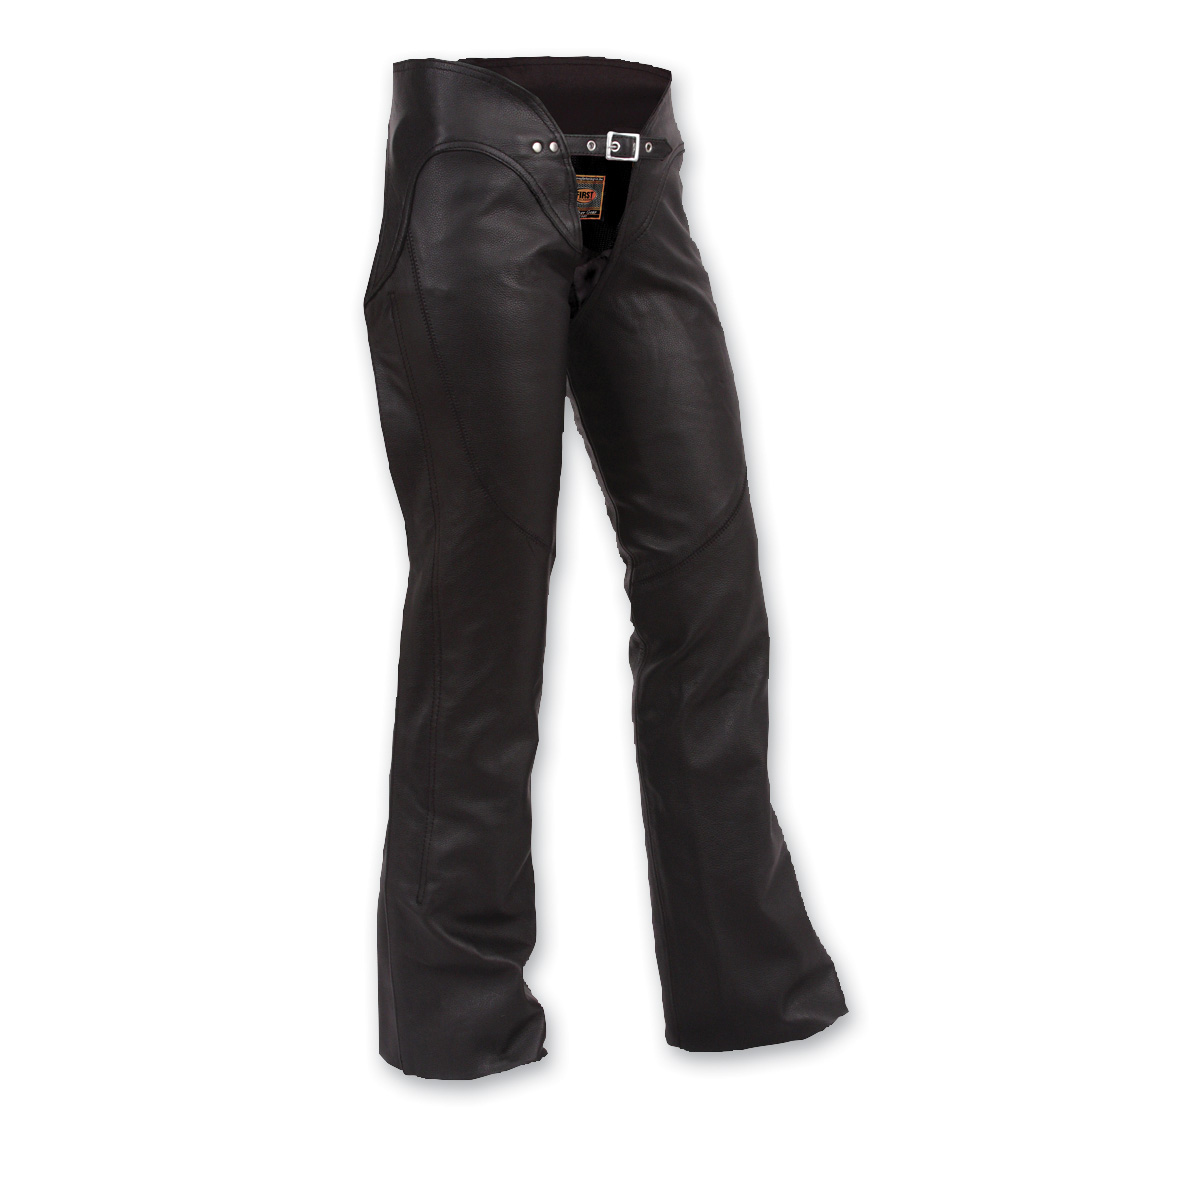 First Manufacturing Co. Women's Belted Chap with Adjustable Thigh Fitting